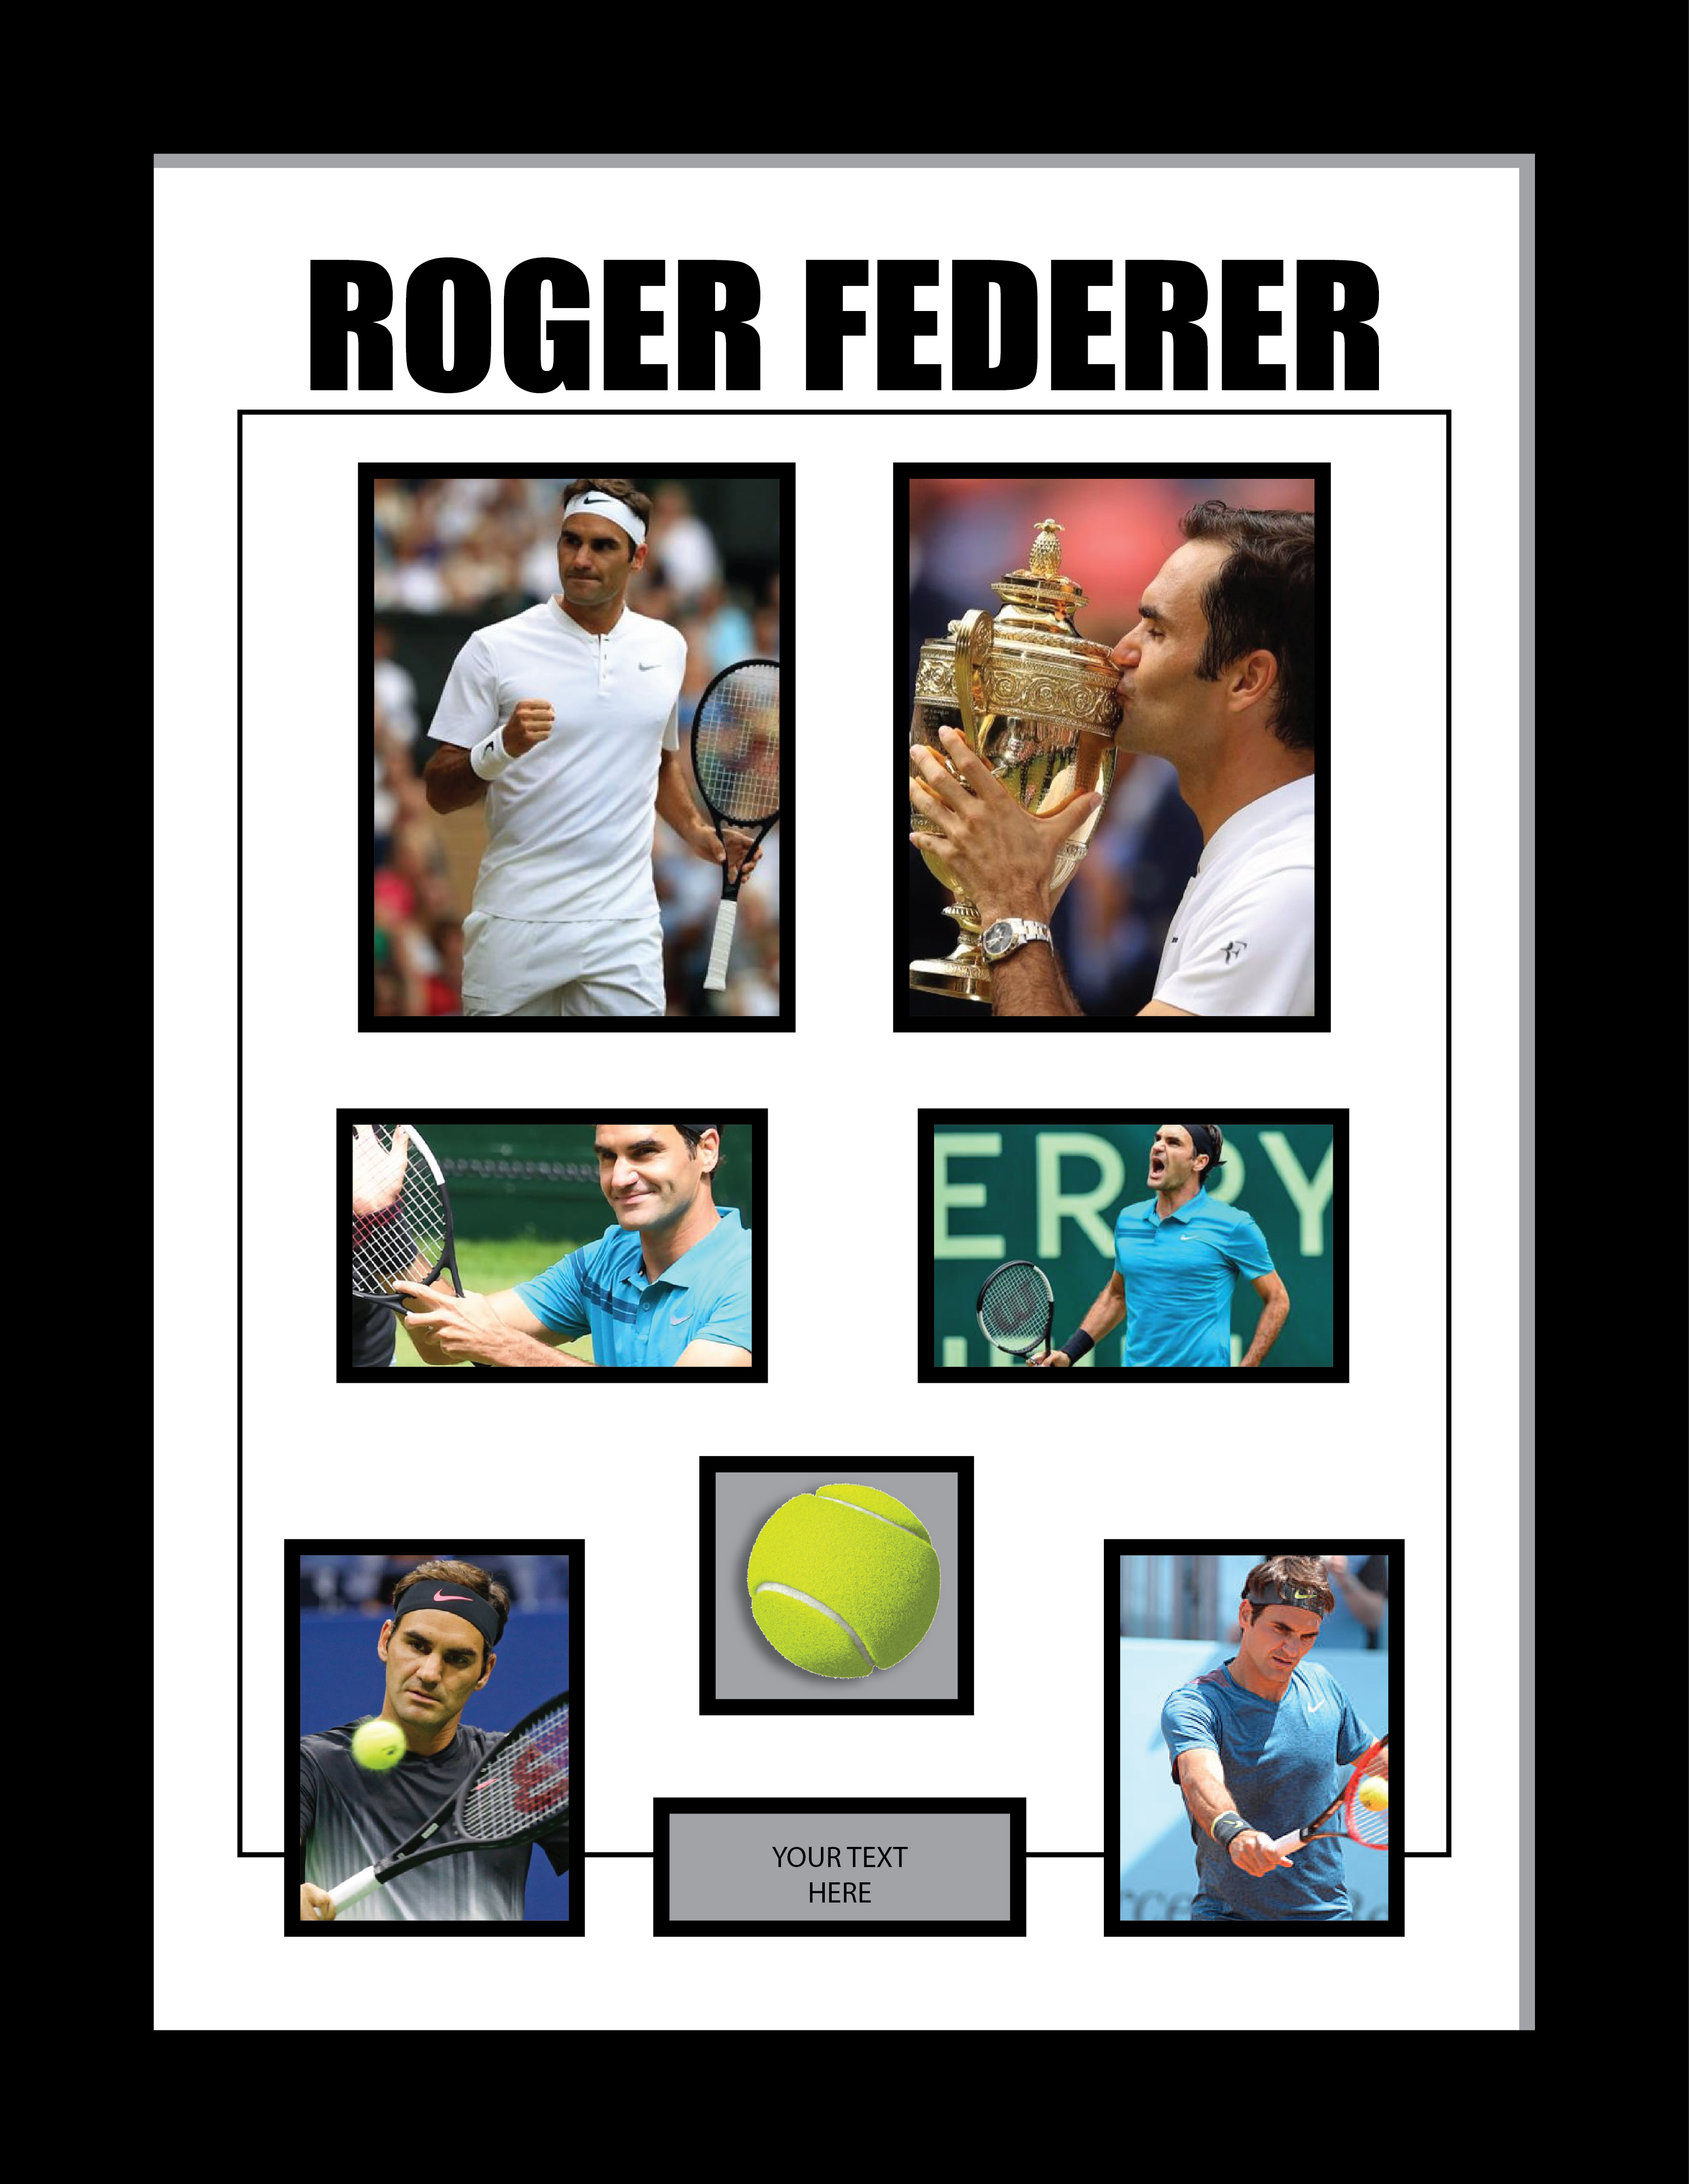 Roger Federer Tennis memorabilia with tennis ball display case